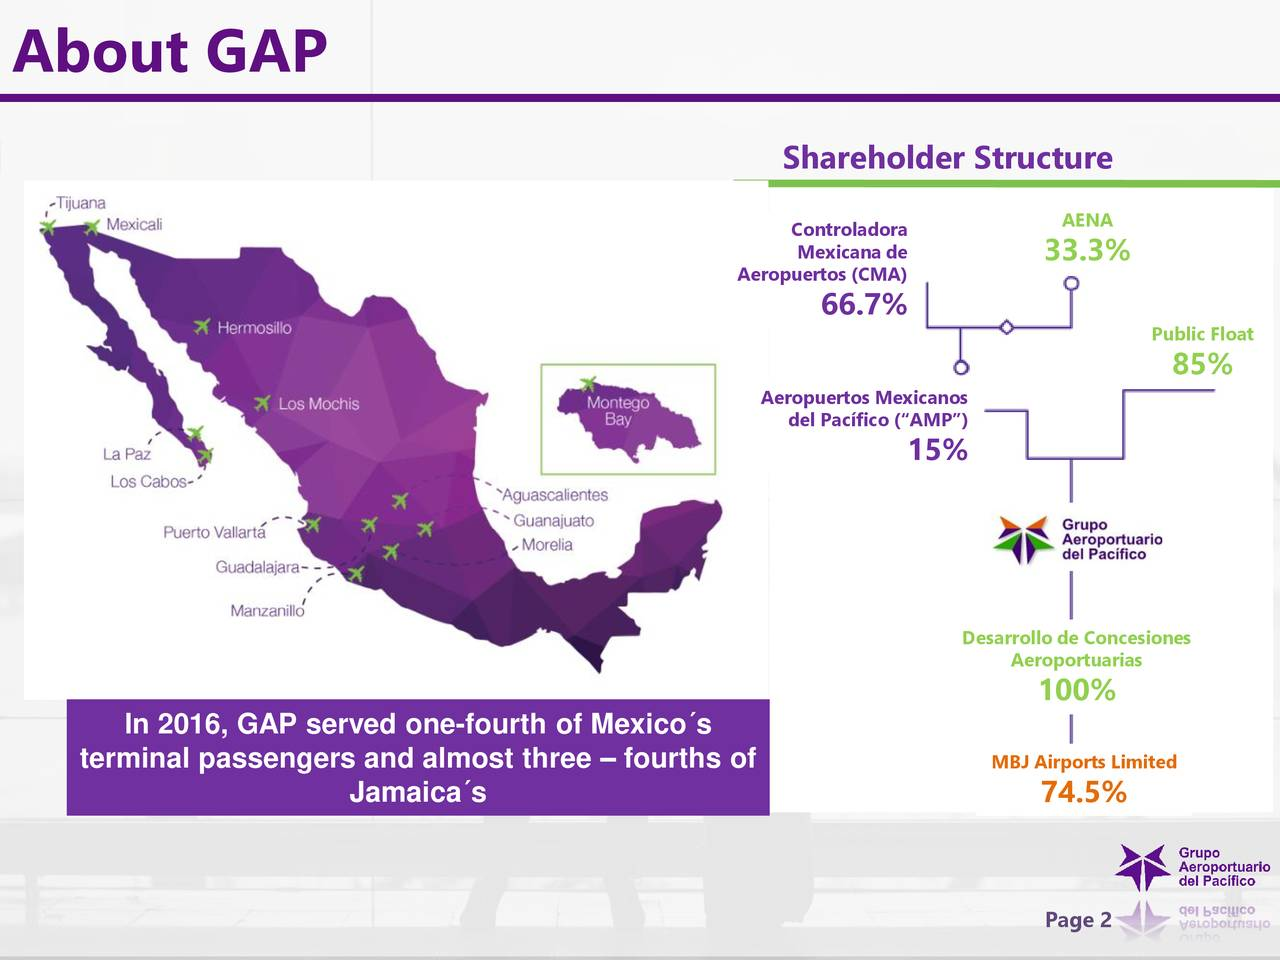 "Shareholder Structure Controladora AENA Mexicana de 33.3% Aeropuertos (CMA) 66.7% Public Float 85% Aeropuertos Mexicanos del Pacífico (""AMP"") 15% Desarrollo de Concesiones Aeroportuarias 100% In 2016, GAP served one-fourth of Mexico´s terminal passengers and almost three – fourths of MBJ Airports Limited Jamaica´s 74.5% Page 2"